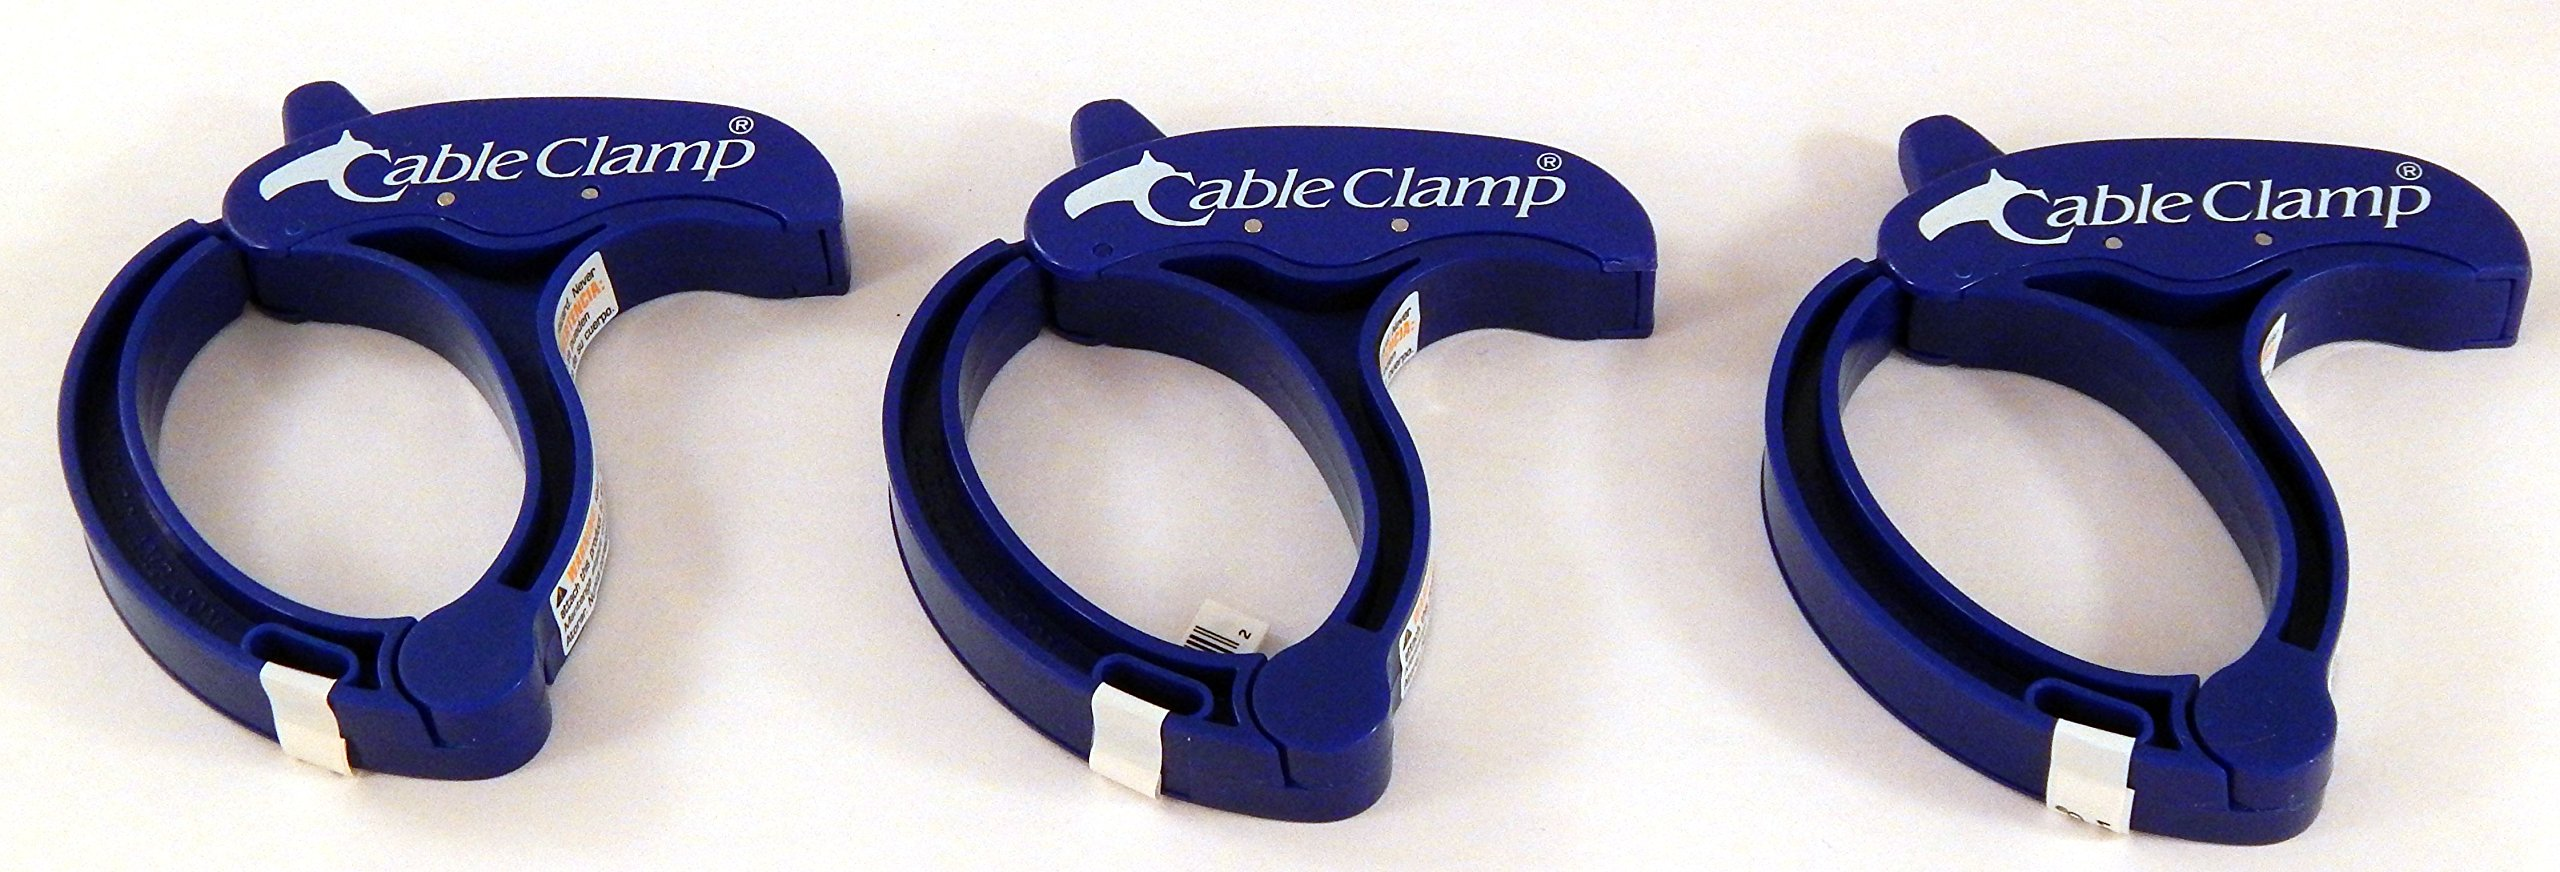 Cable Clamp, LARGE Cable / Hose / Rope / Power Tool / Computer Cable Clamp, Blue Color (Set/ Pack of 3)